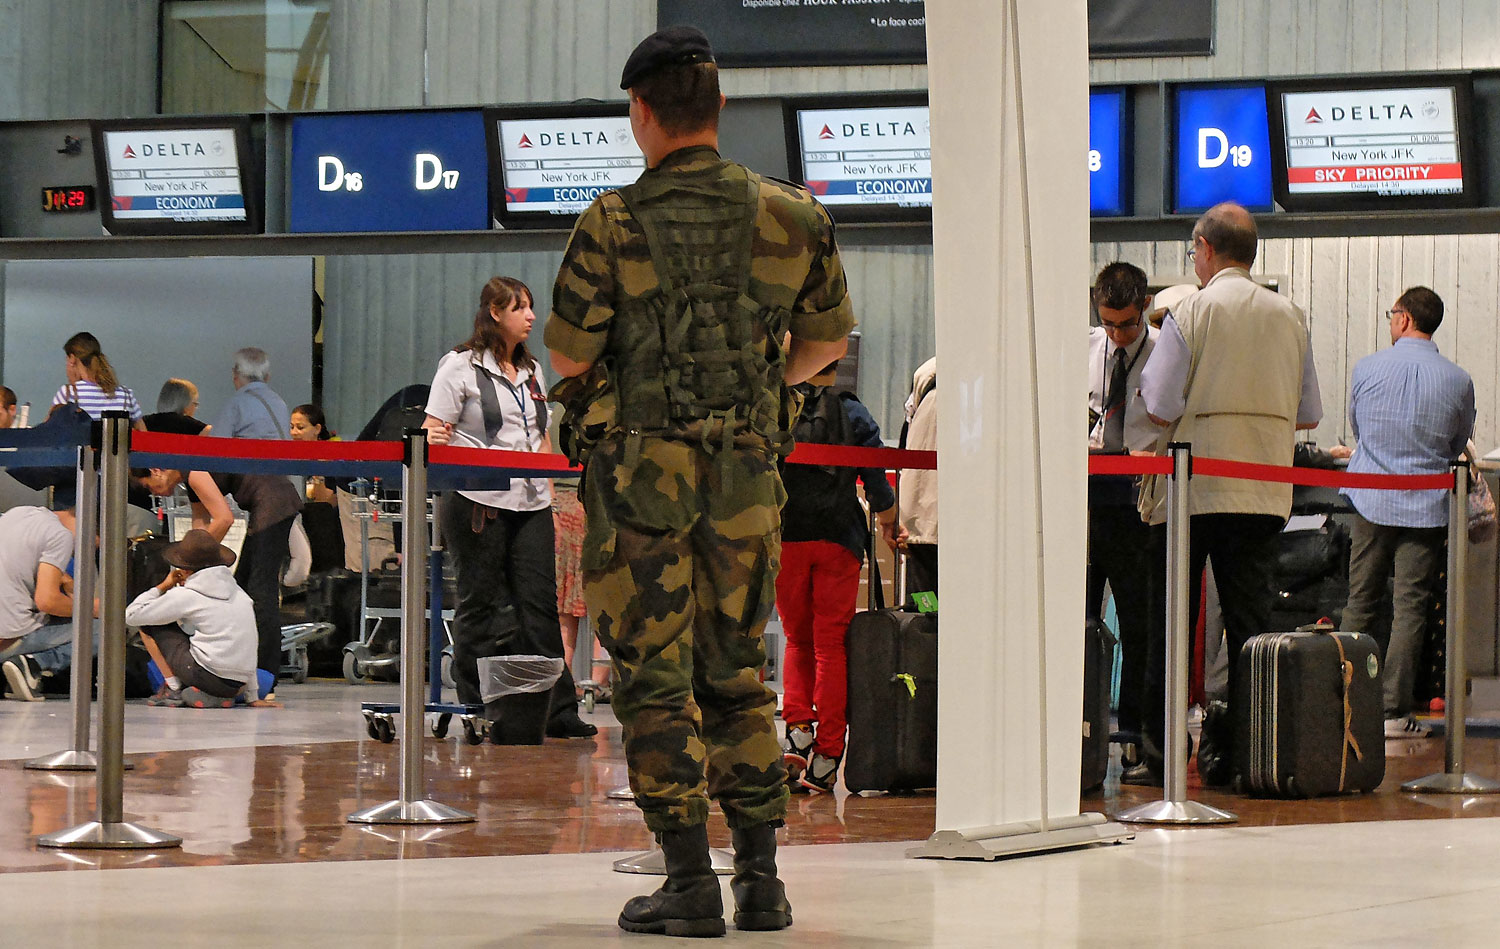 A French soldier stands in front of the desk of American airline company 'Delta Air Lines' in Nice airport, south eastern France, July 4, 2014.